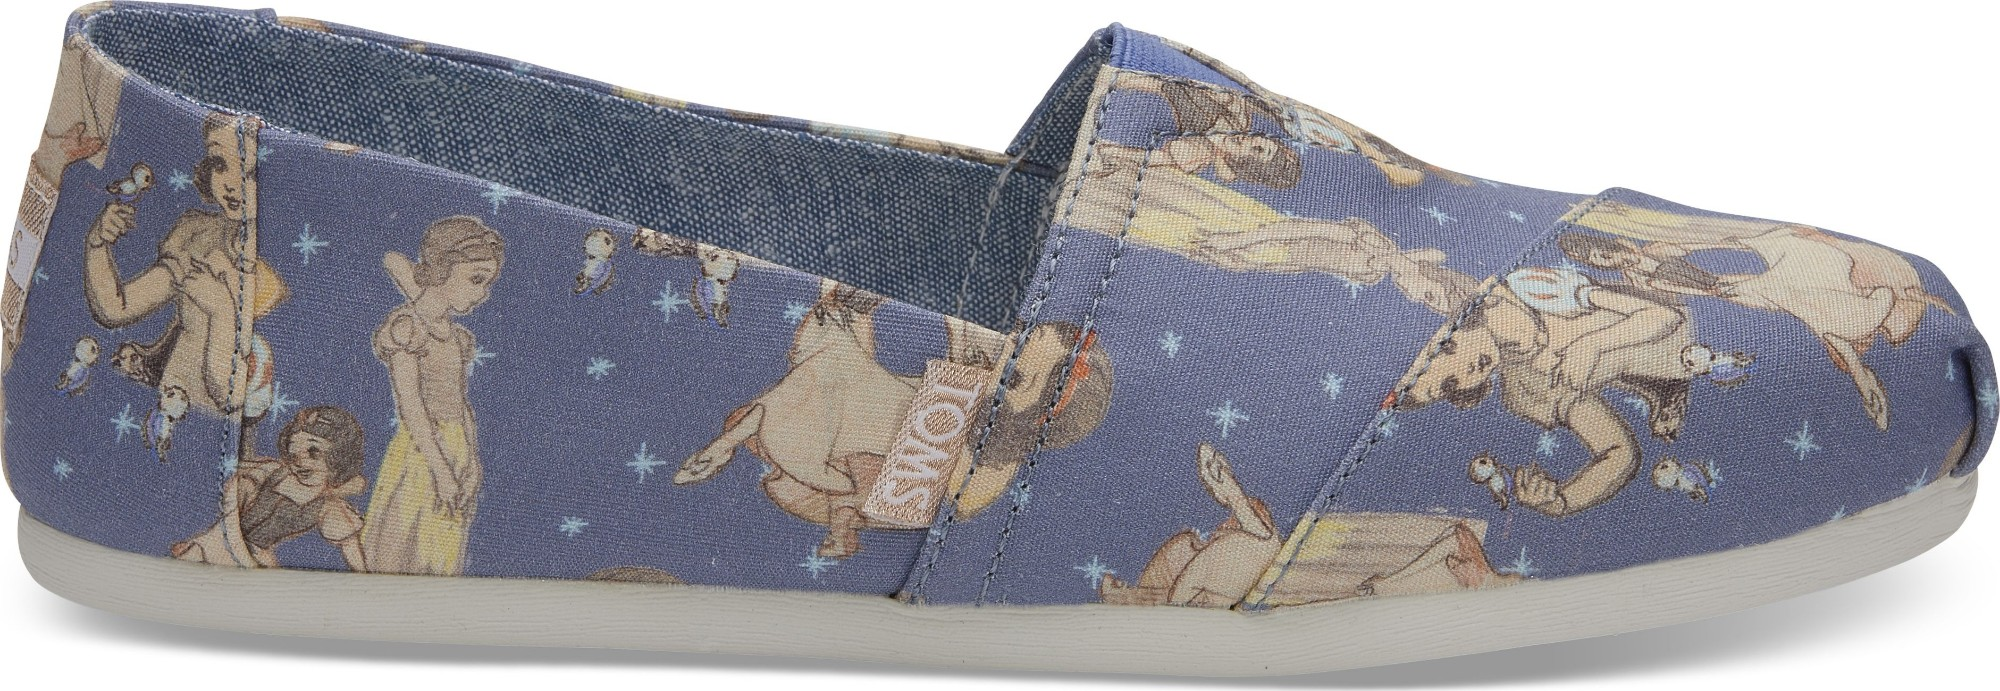 TOMS Snow White Printed Canvas Women's Alpargata Blue 38